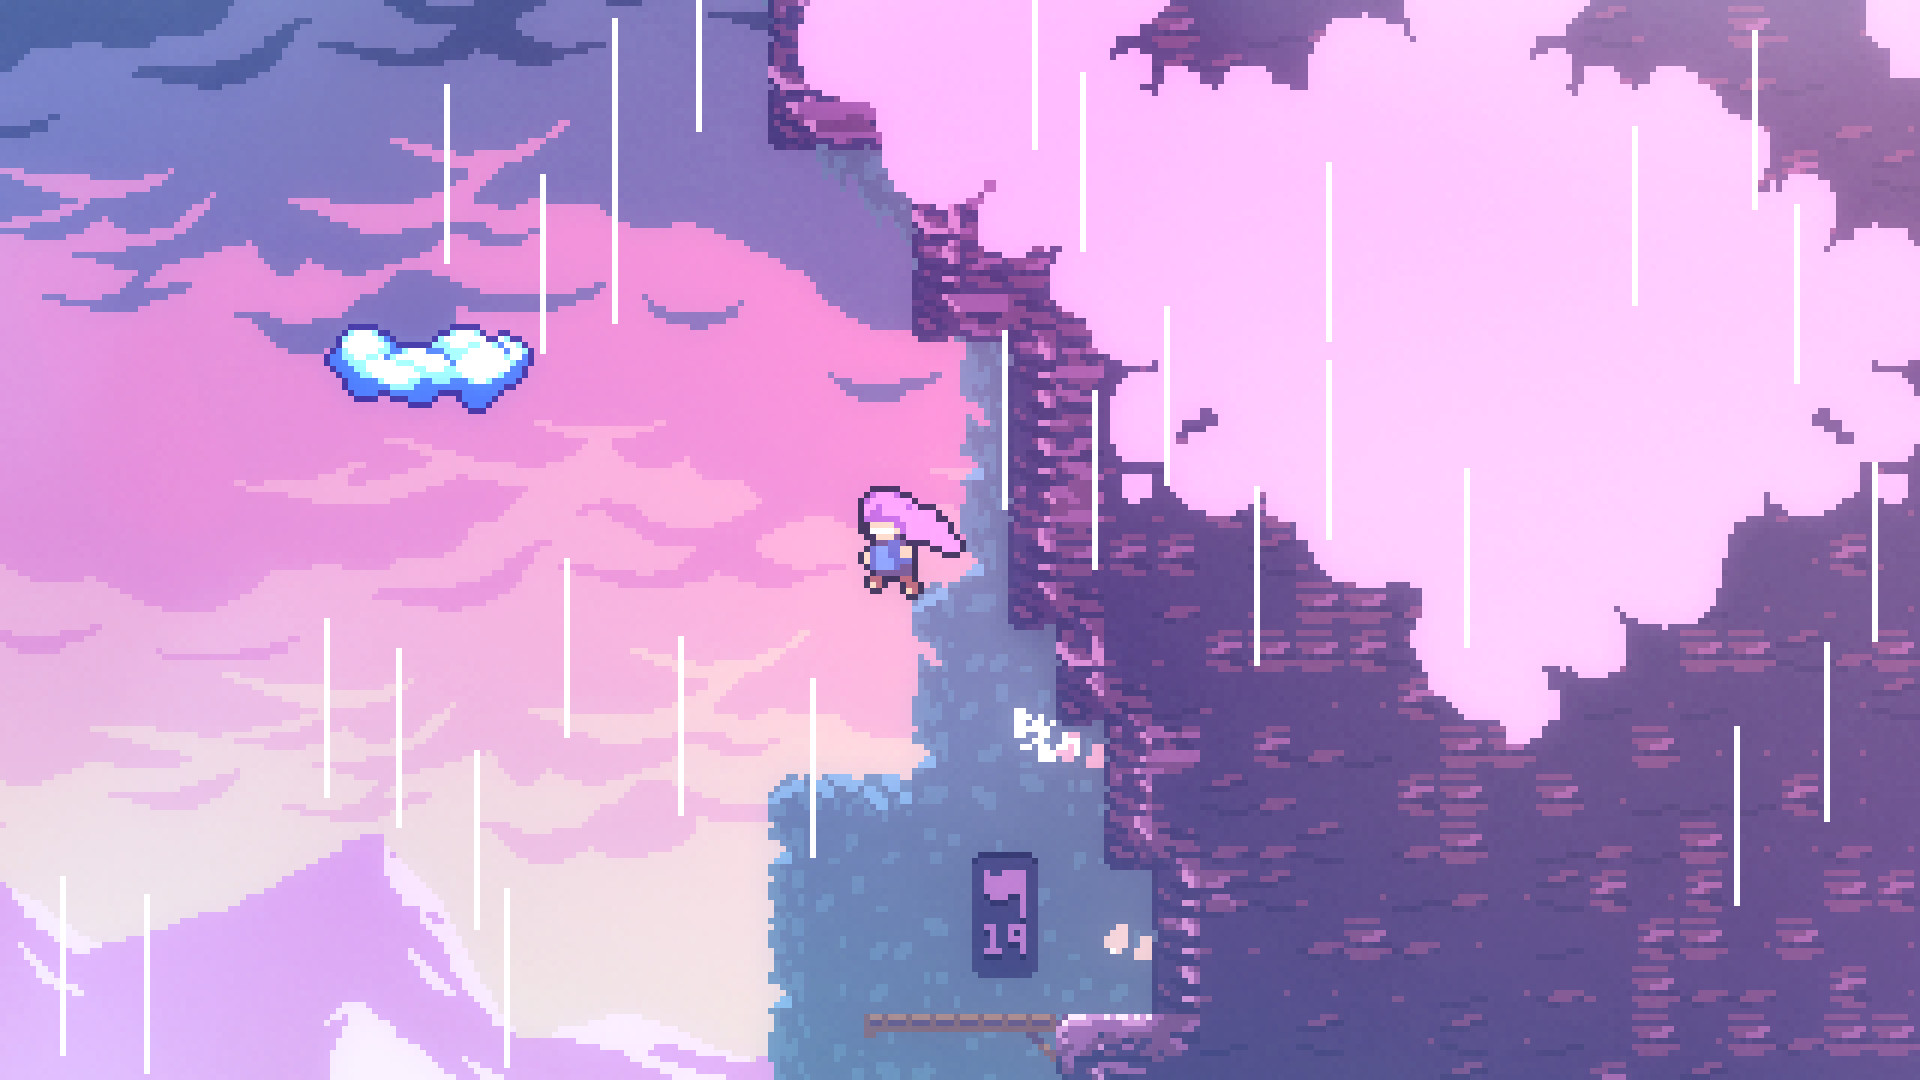 Celeste nominated for Game of the Year